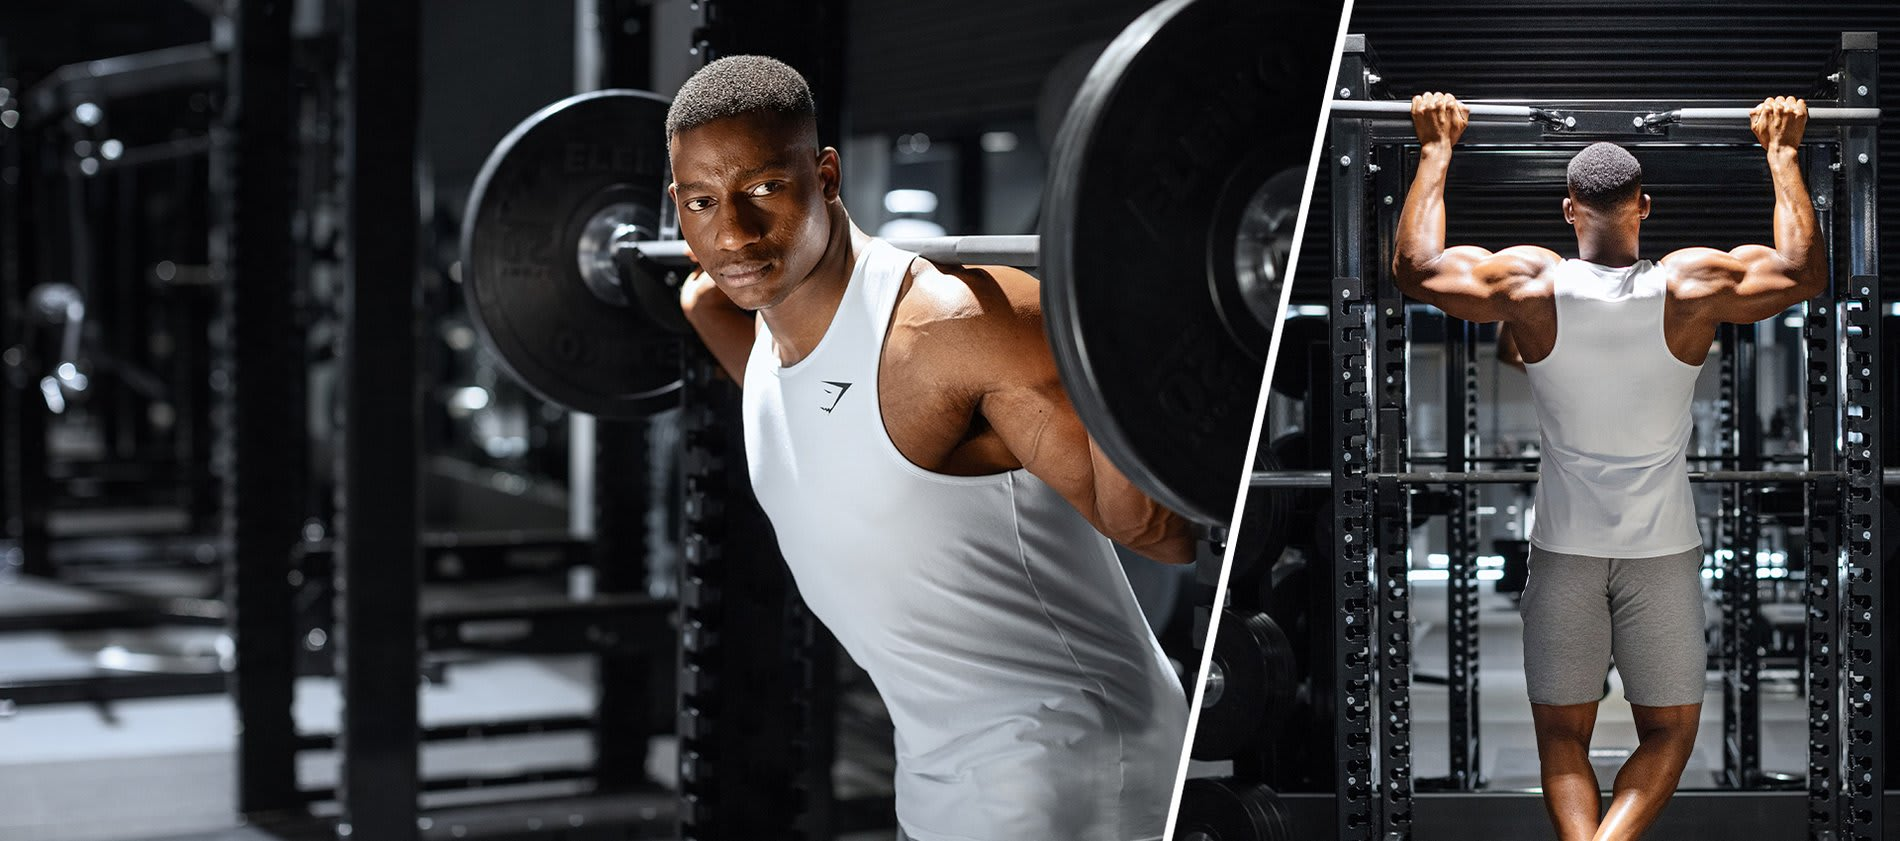 Gymshark Athlete Lubomba wearing Critical in the Gymshark Lifting Club.